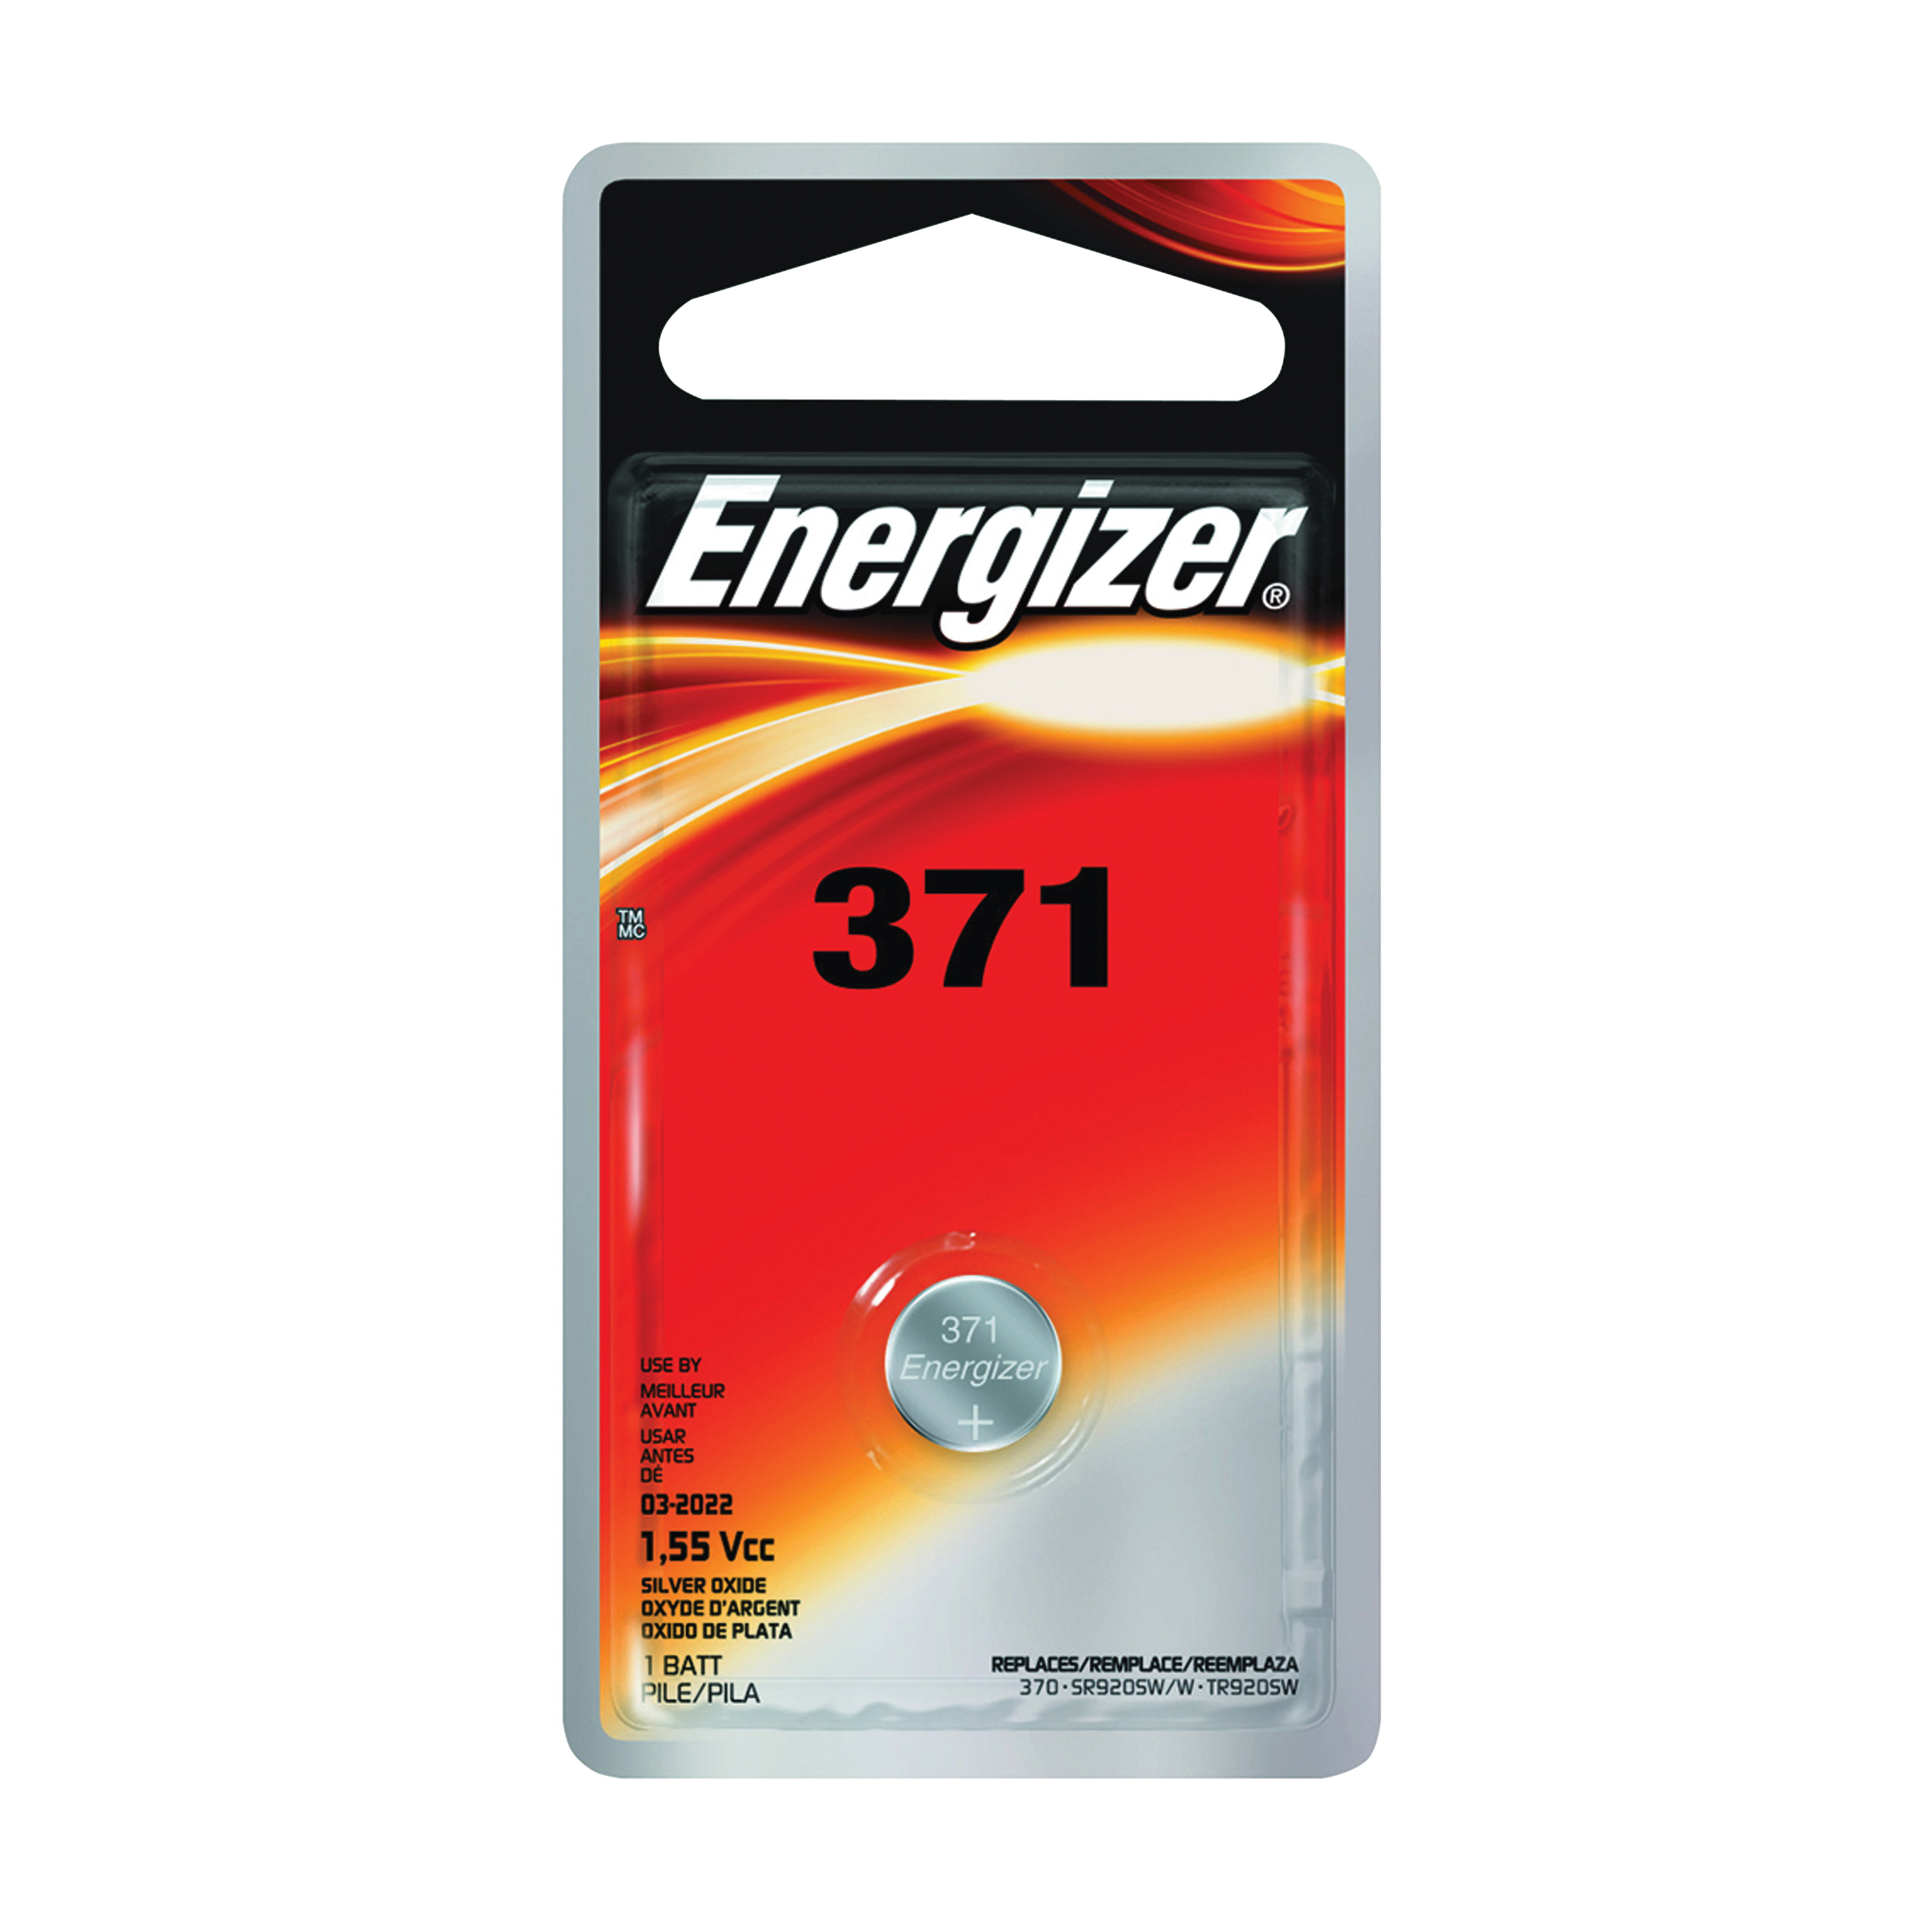 Picture of Energizer 371BPZ Coin Cell Battery, 1.5 V Battery, 34 mAh, 371 Battery, Silver Oxide